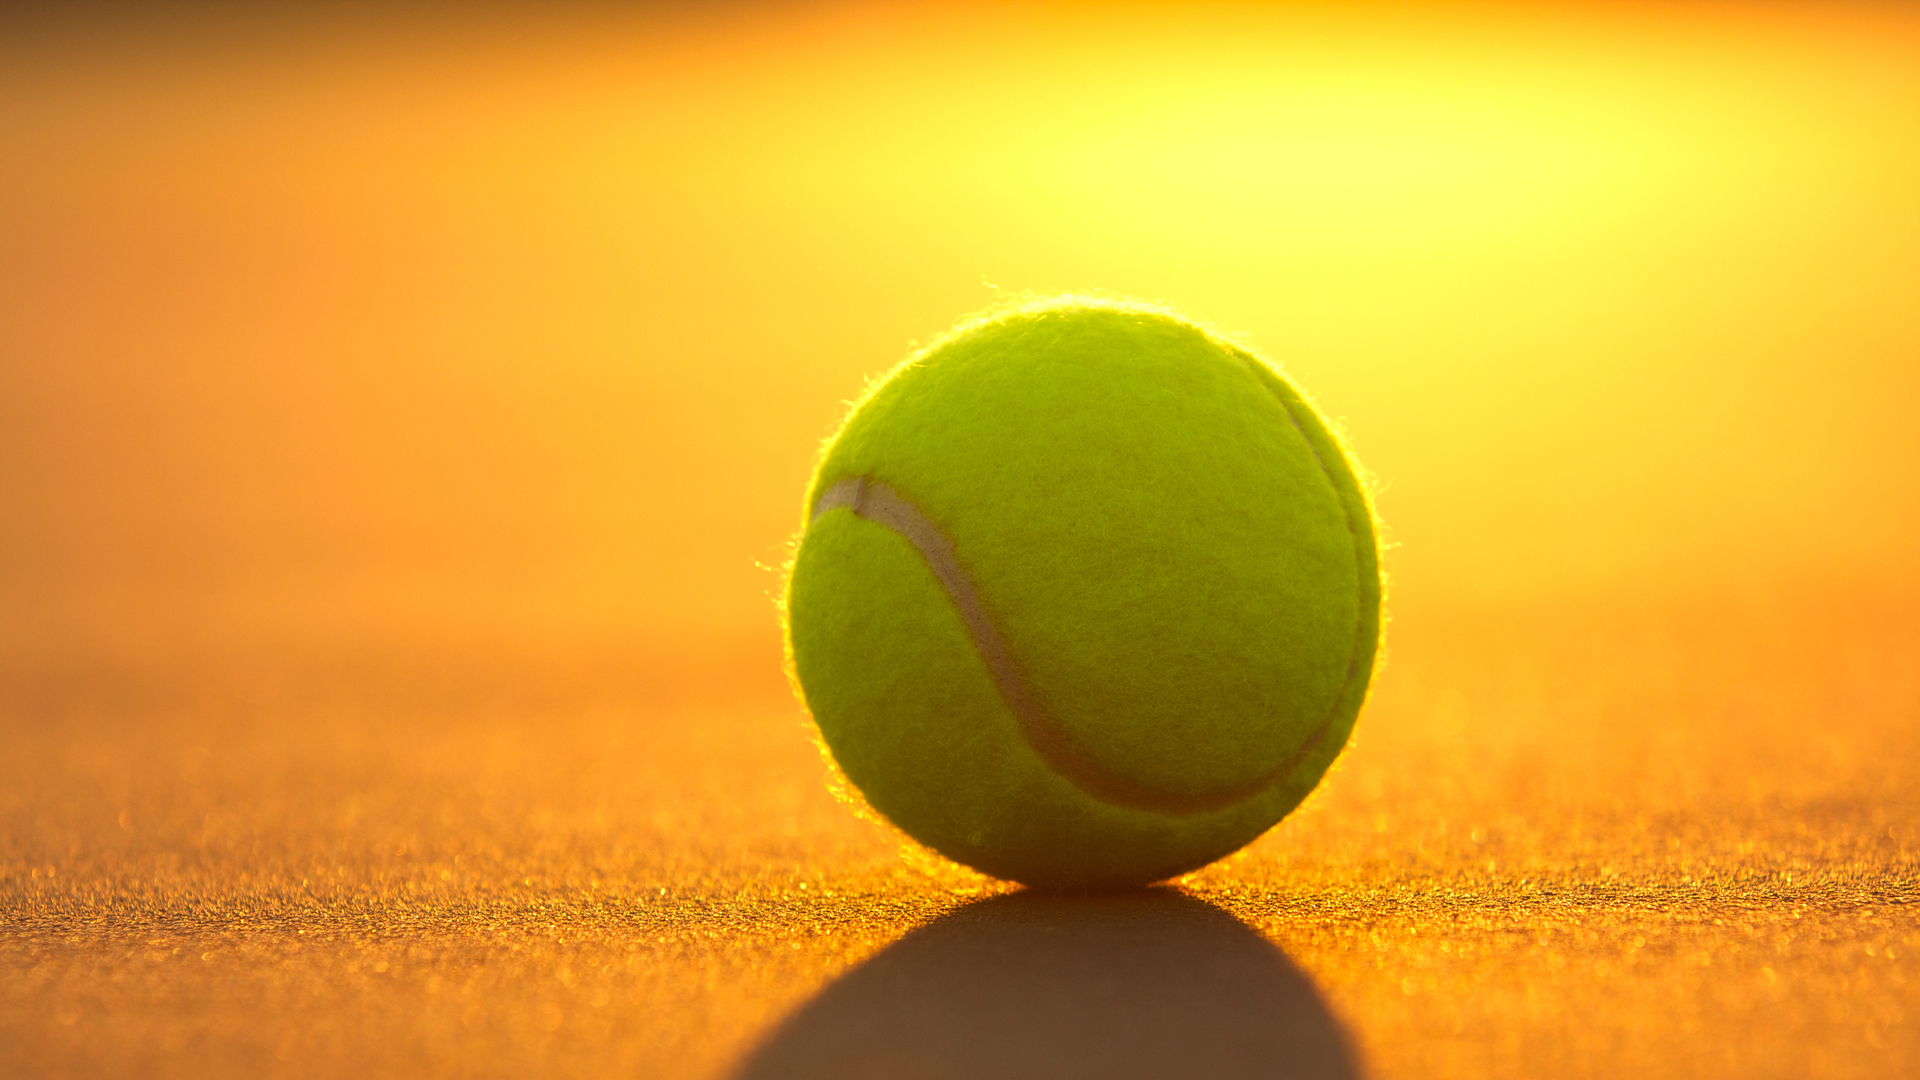 Tennis Ball Sport Hd Wallpaper